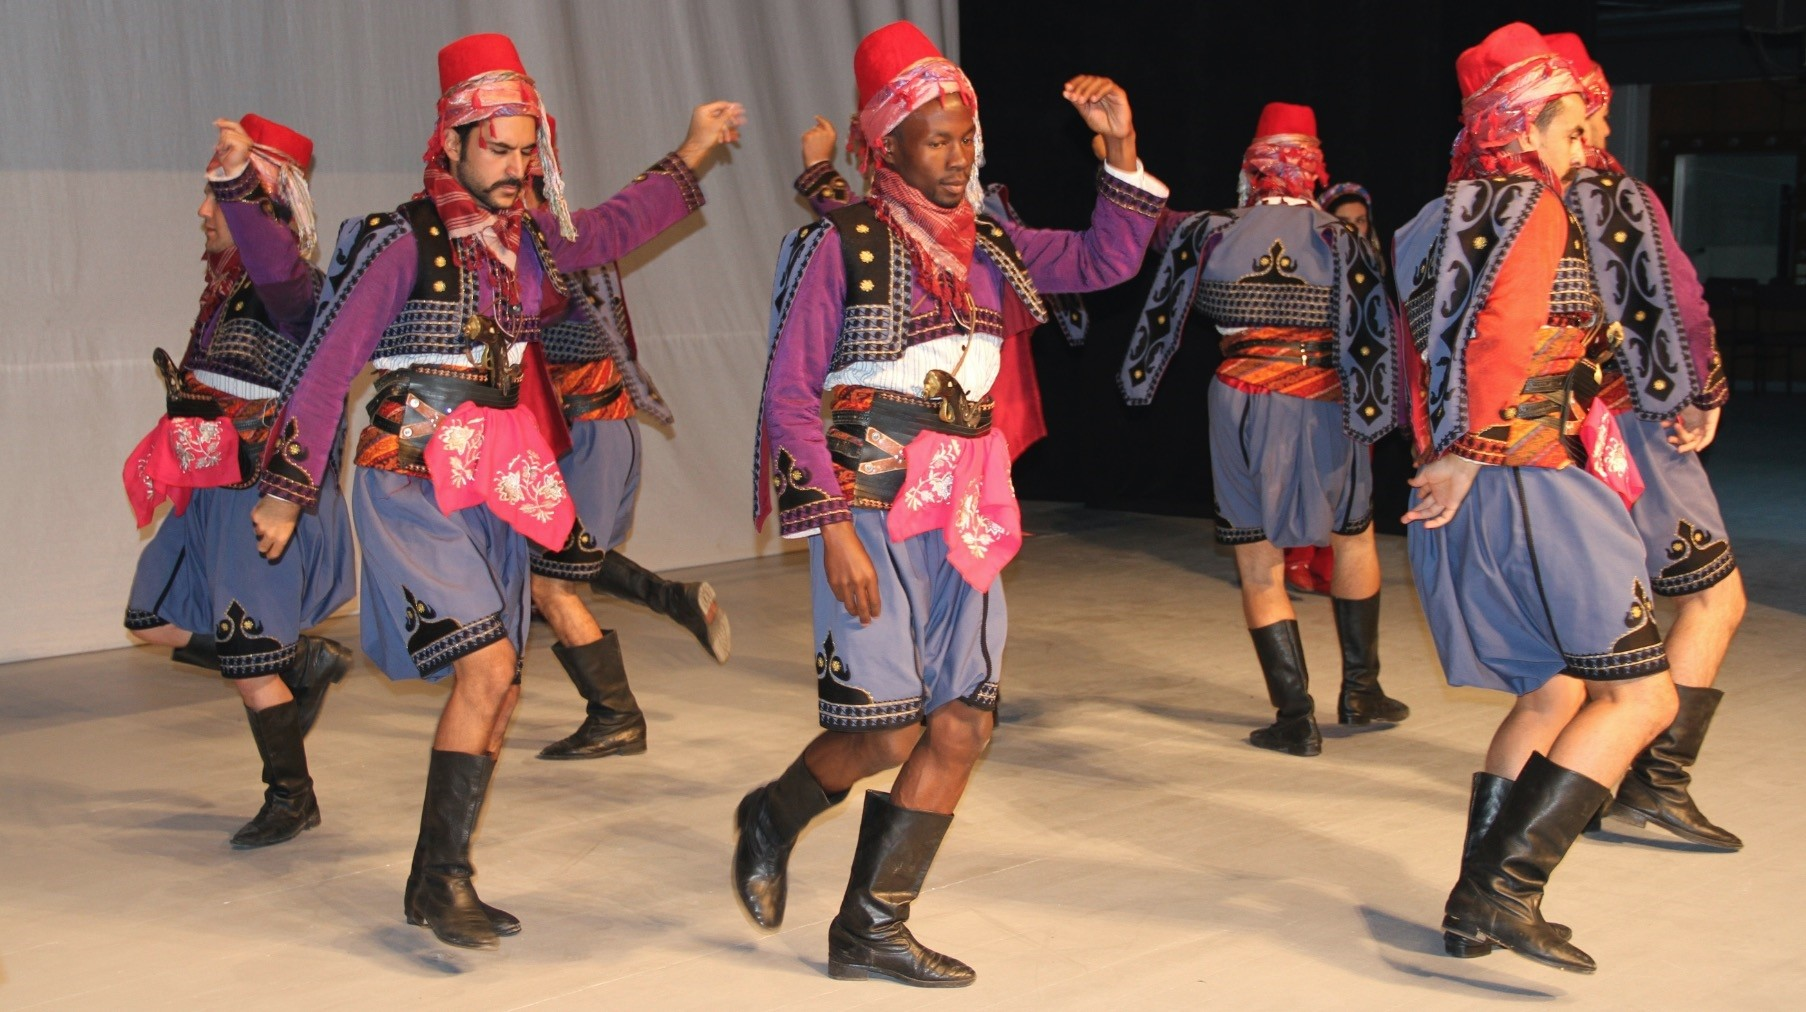 Getting a chance to know Turkish culture better, Mugenzi practices Turkish folk dances from various regions with his friends.